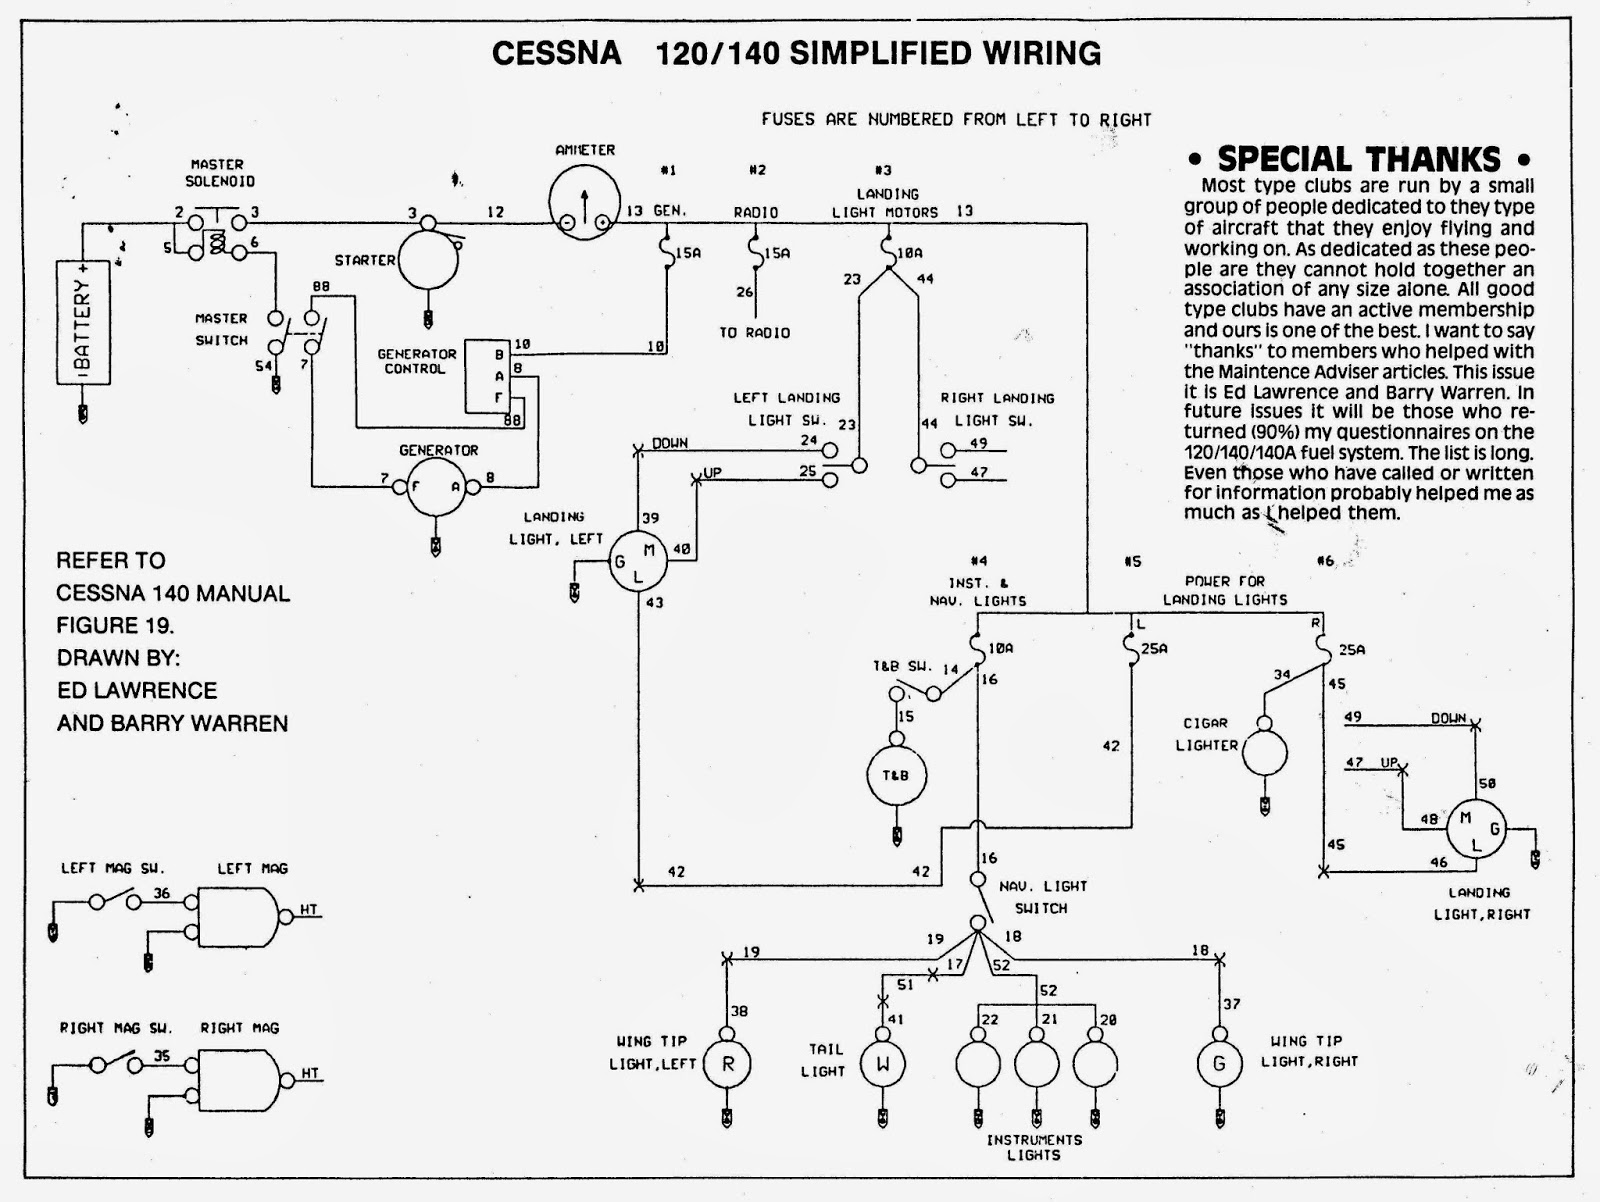 C 140+Simple+Wiring aircraft wiring diagram boeing wiring symbols \u2022 free wiring spaj 140 c wiring diagram at gsmx.co